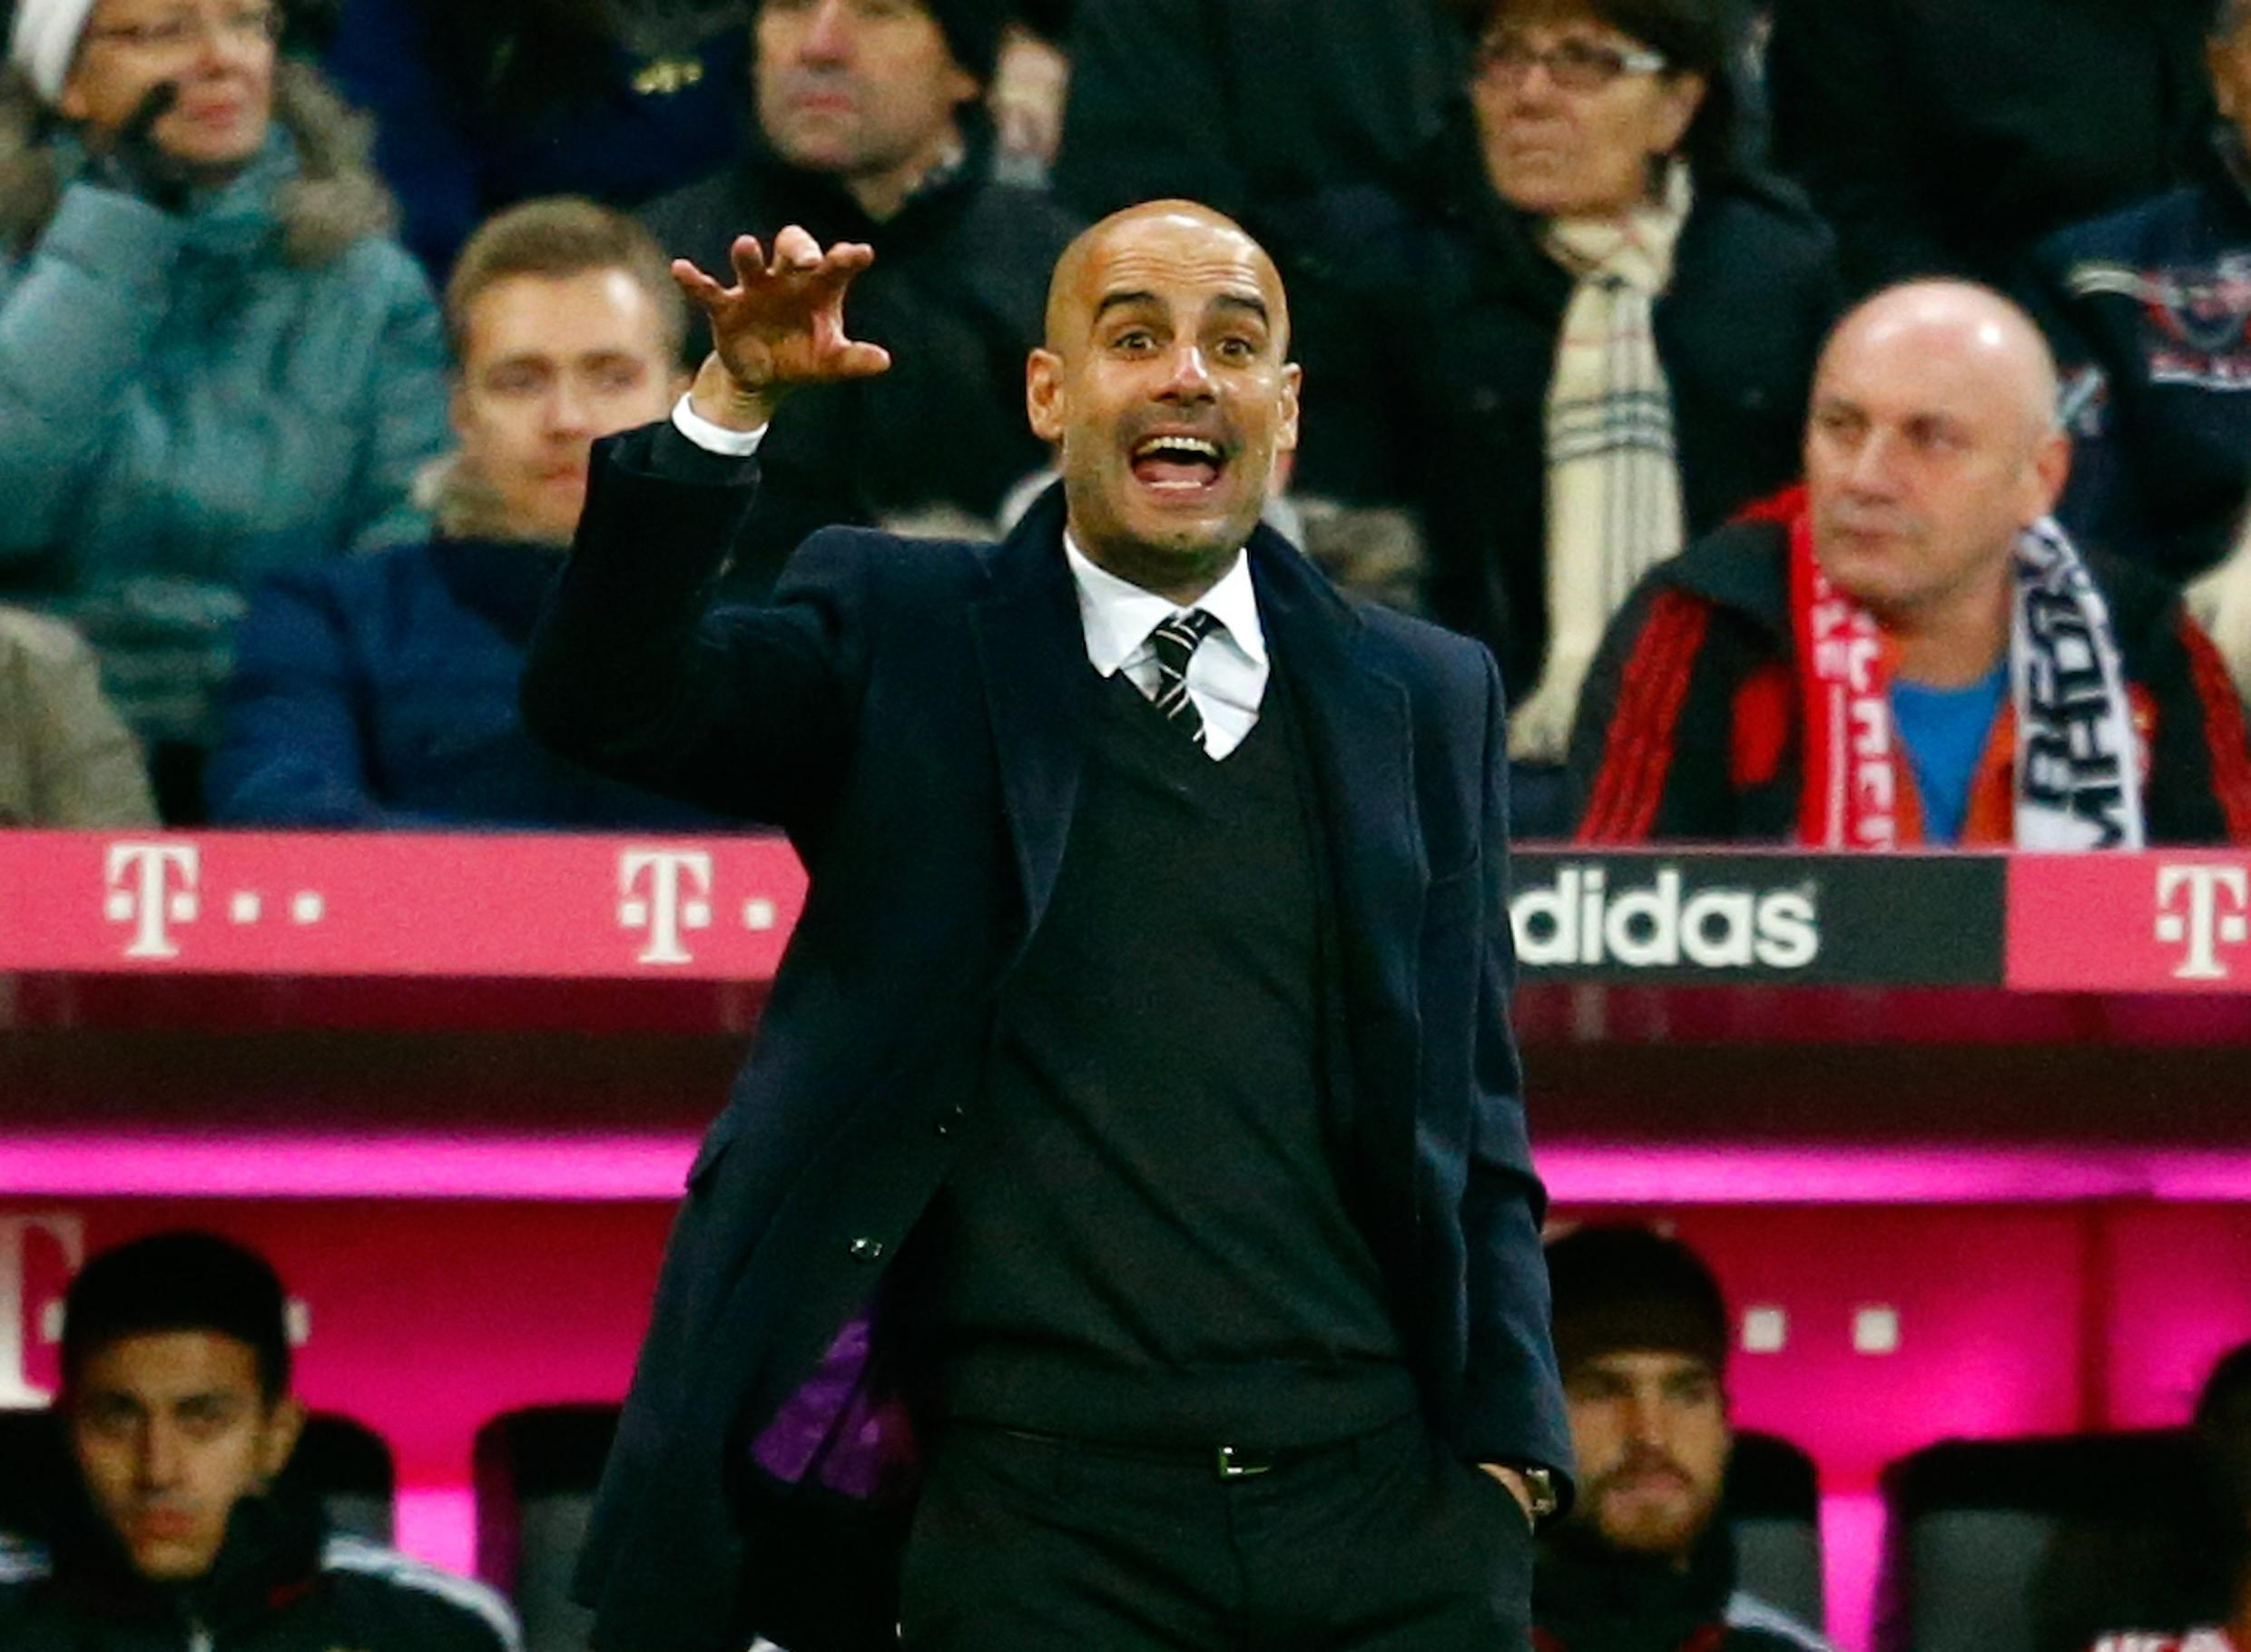 Pep Guardiola has won the Bundesliga title with Bayern Munich in his two seasons with the Bavarians